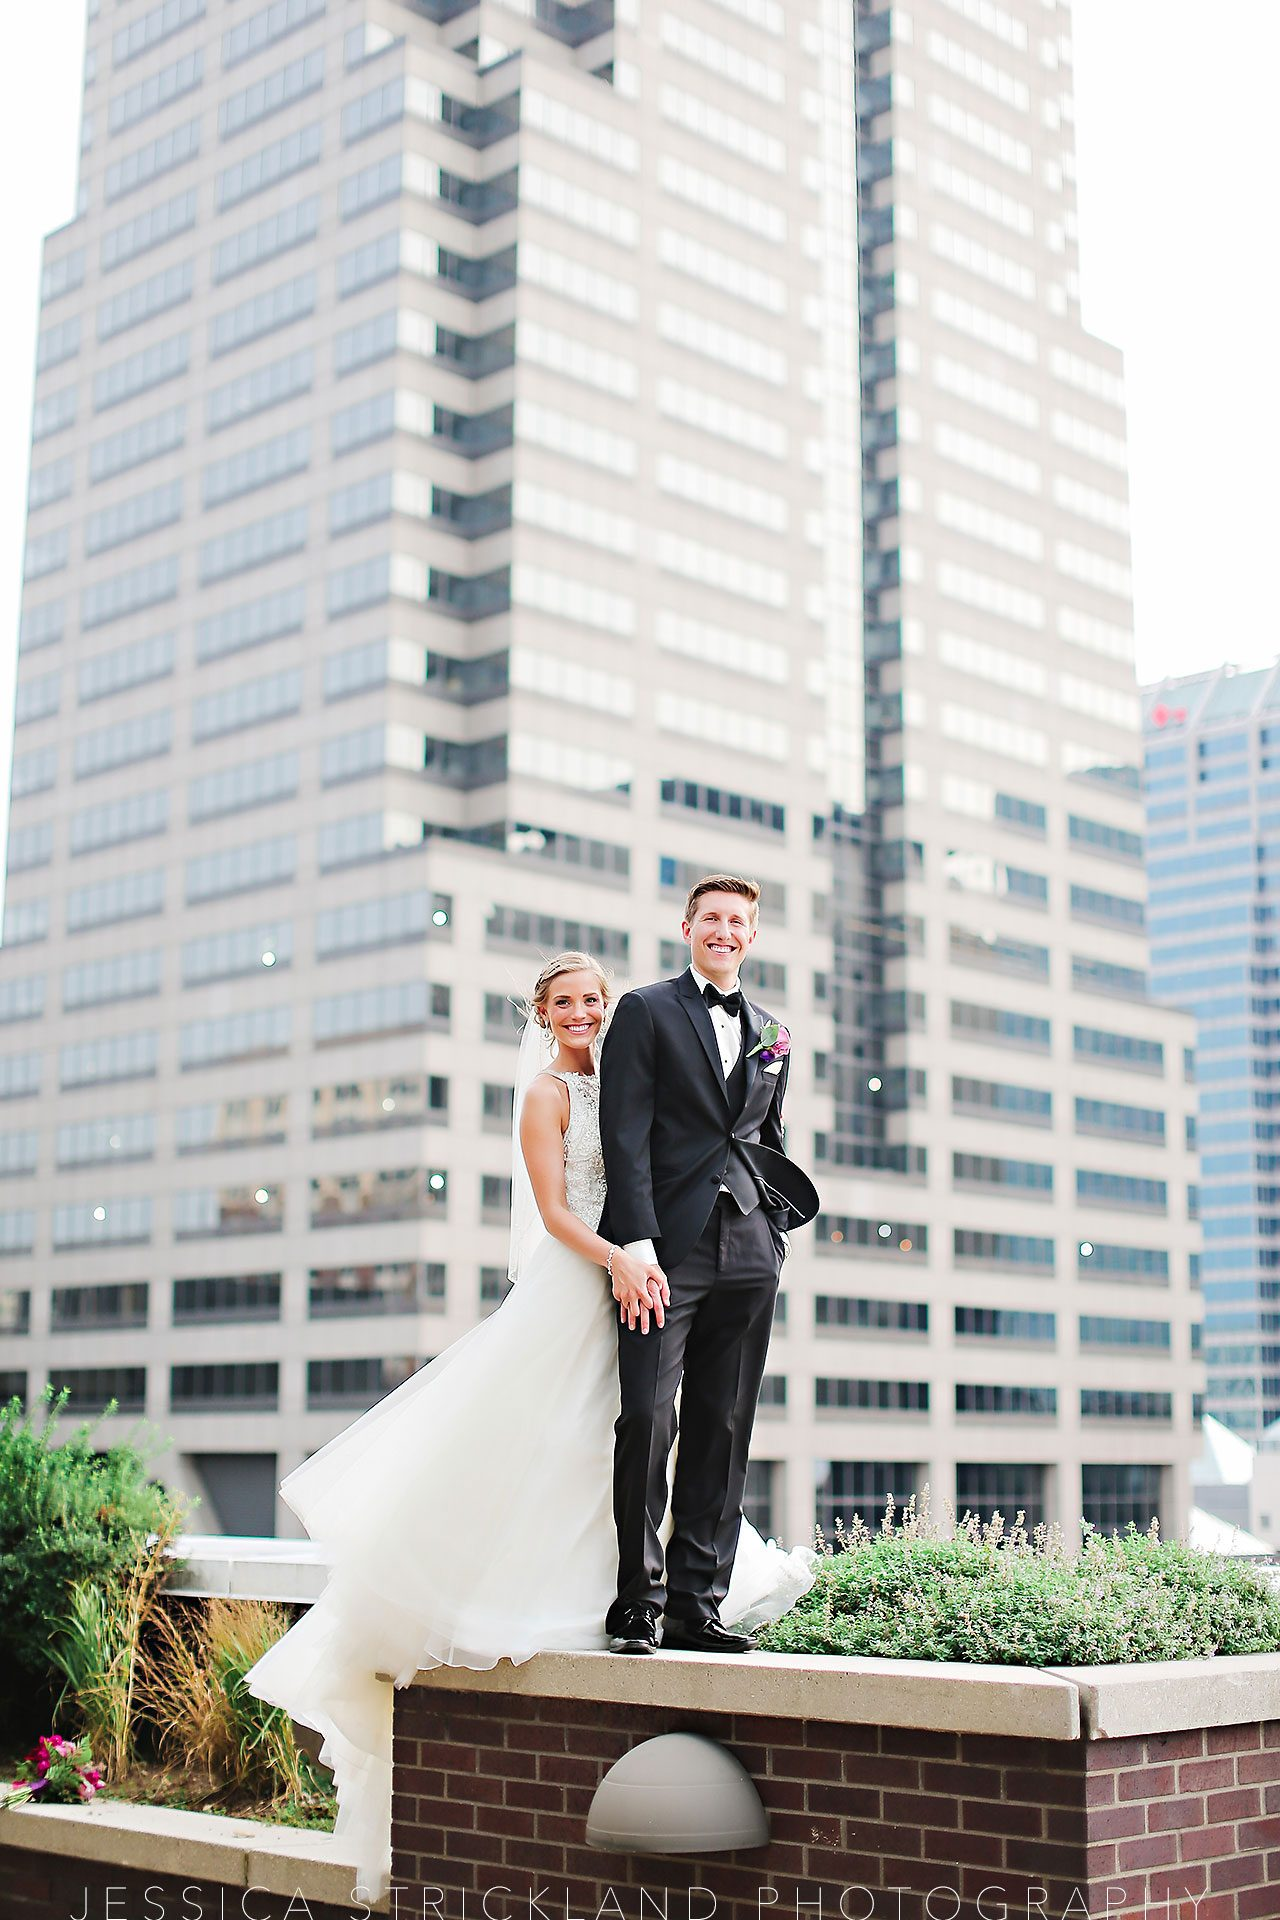 Serra Alex Regions Tower Indianapolis Wedding 233 watermarked